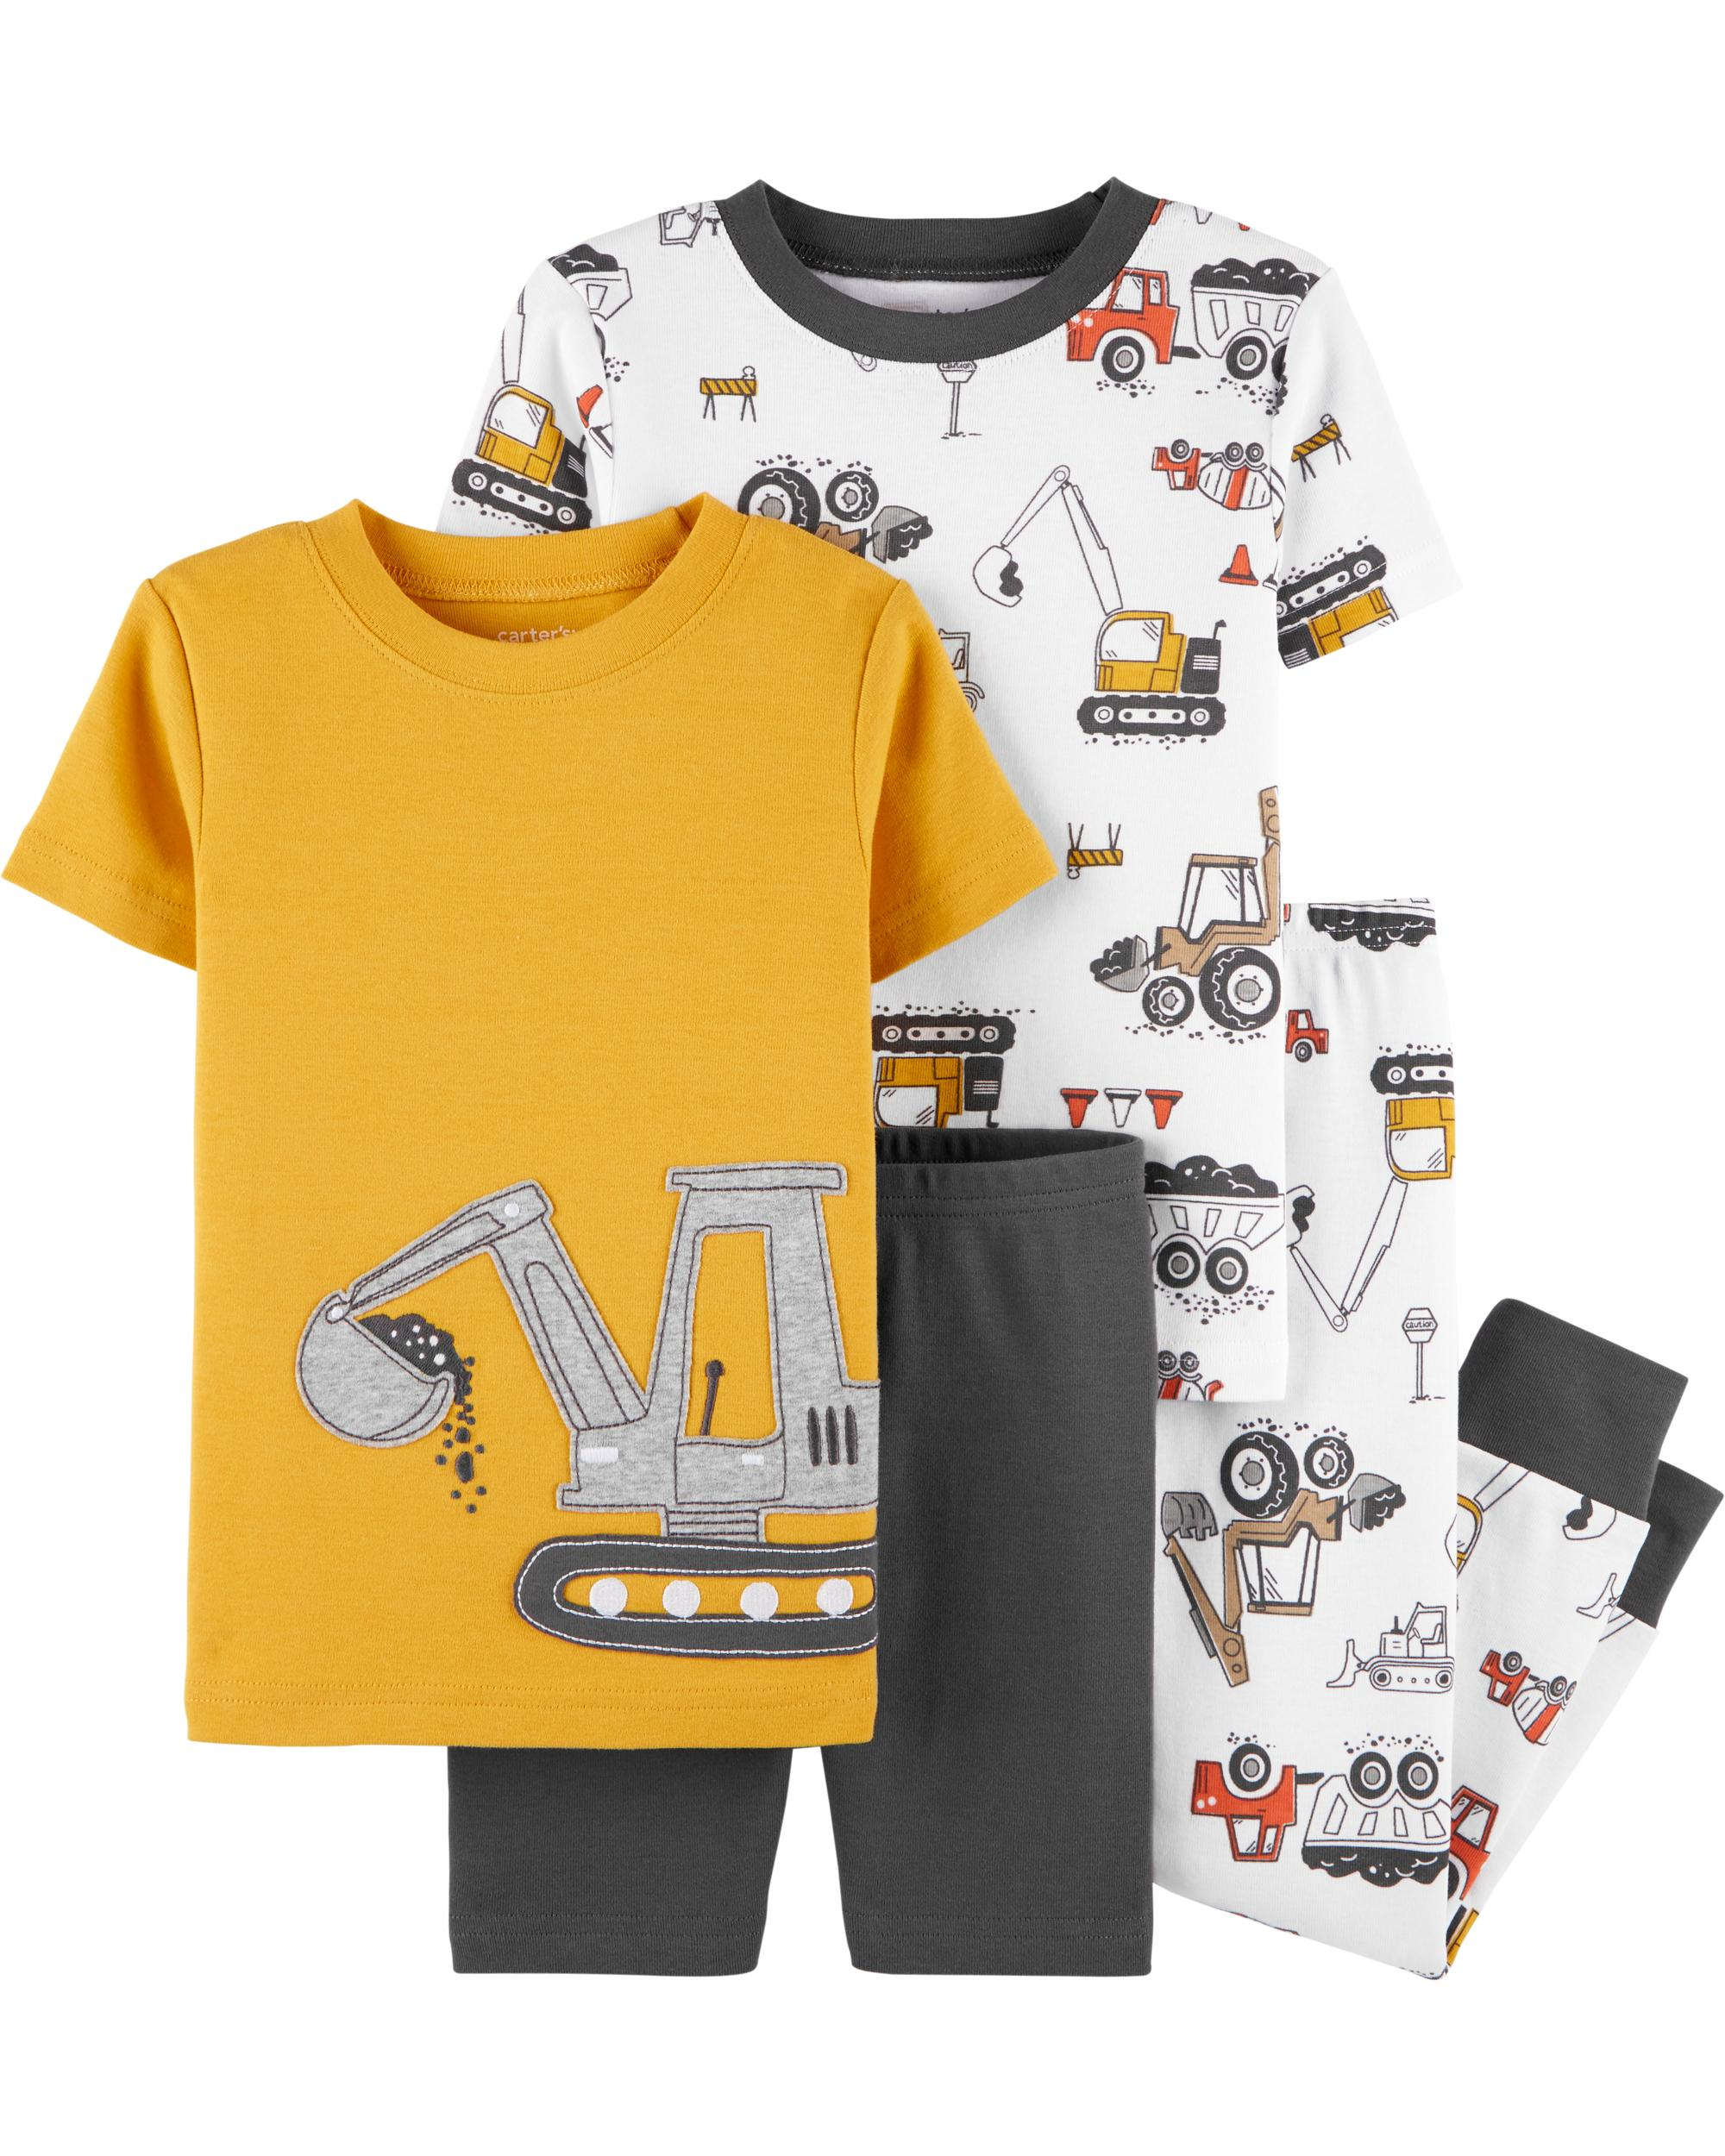 4-Piece Carter's Toddler and Baby Top/Bottom Pajamas Set (various)